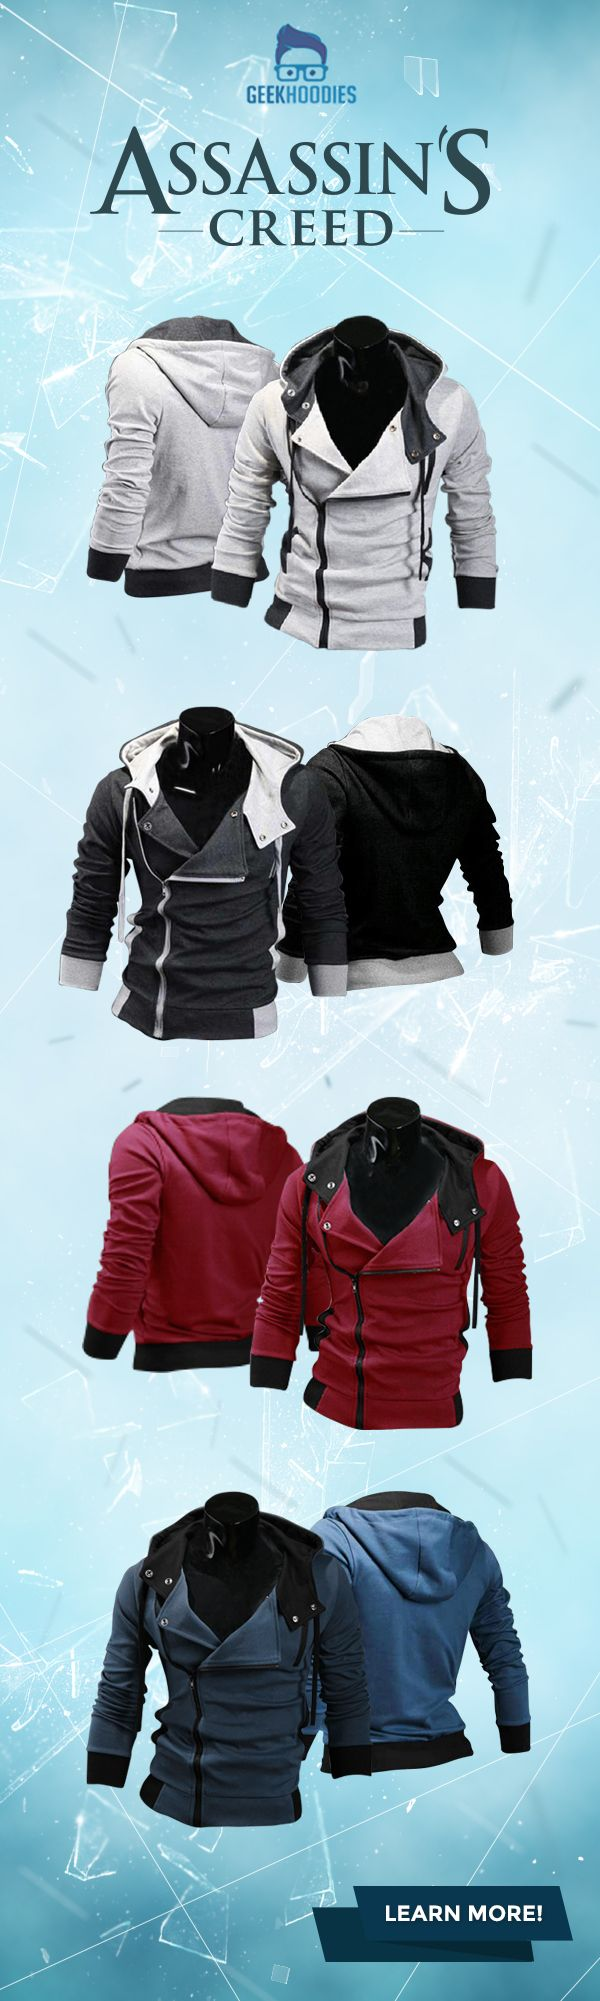 Our International Best Seller Hands Down An Absolute Favourite Jaket Hoodie Jumper Abslt Around The Globe That Sells Faster Than You Can Say Desmond Miles Assassins Creed Iii Dm Original Has Been Refitted For 2017